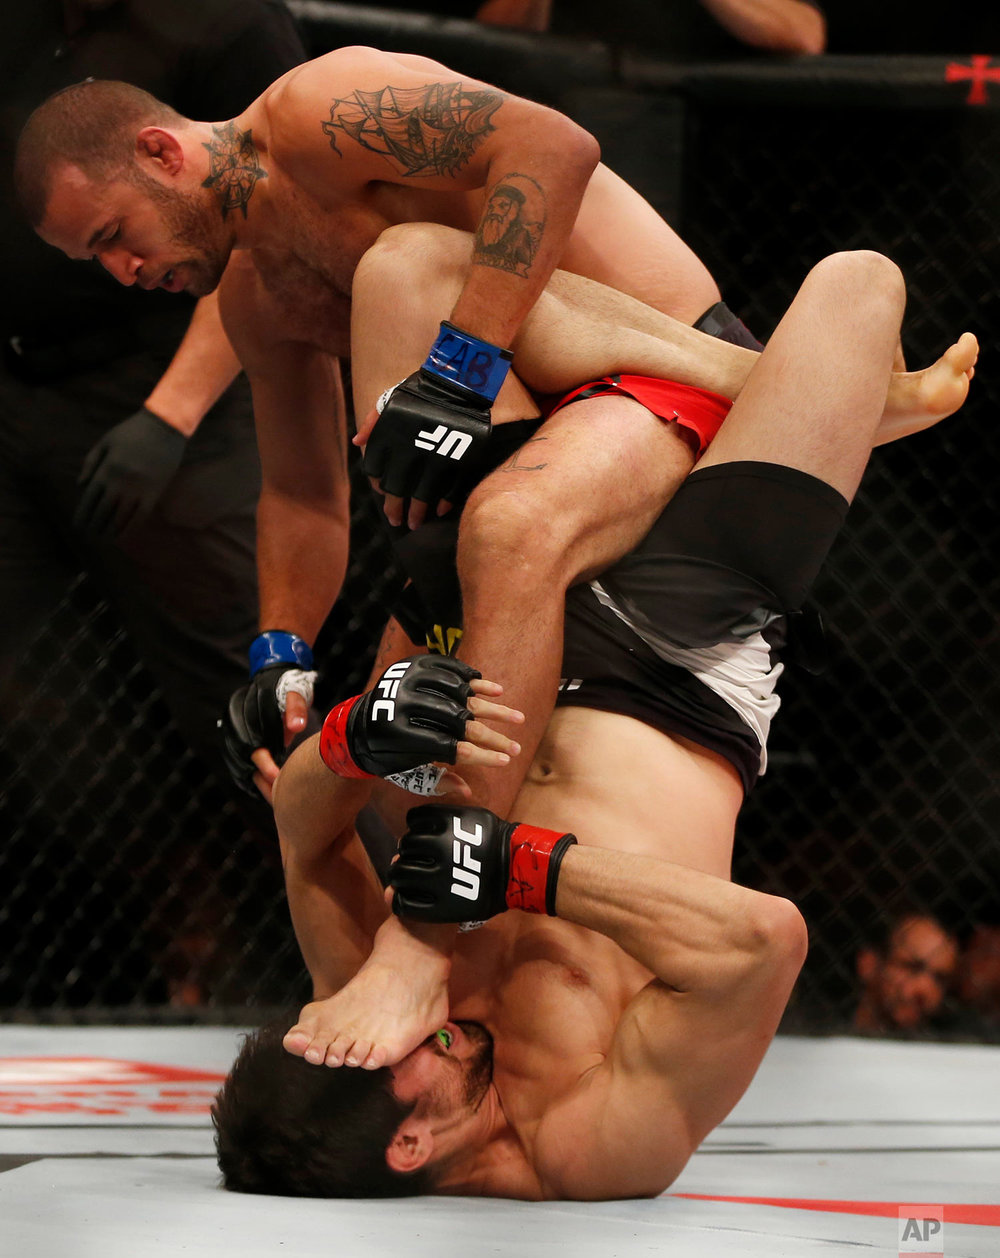 U.S.' Eric Spicely, top, fights Brazil's Antonio Carlos Junior during their UFC middleweight mixed martial arts bout in Rio de Janeiro, Brazil, Saturday, June 3, 2017. (AP Photo/Leo Correa)